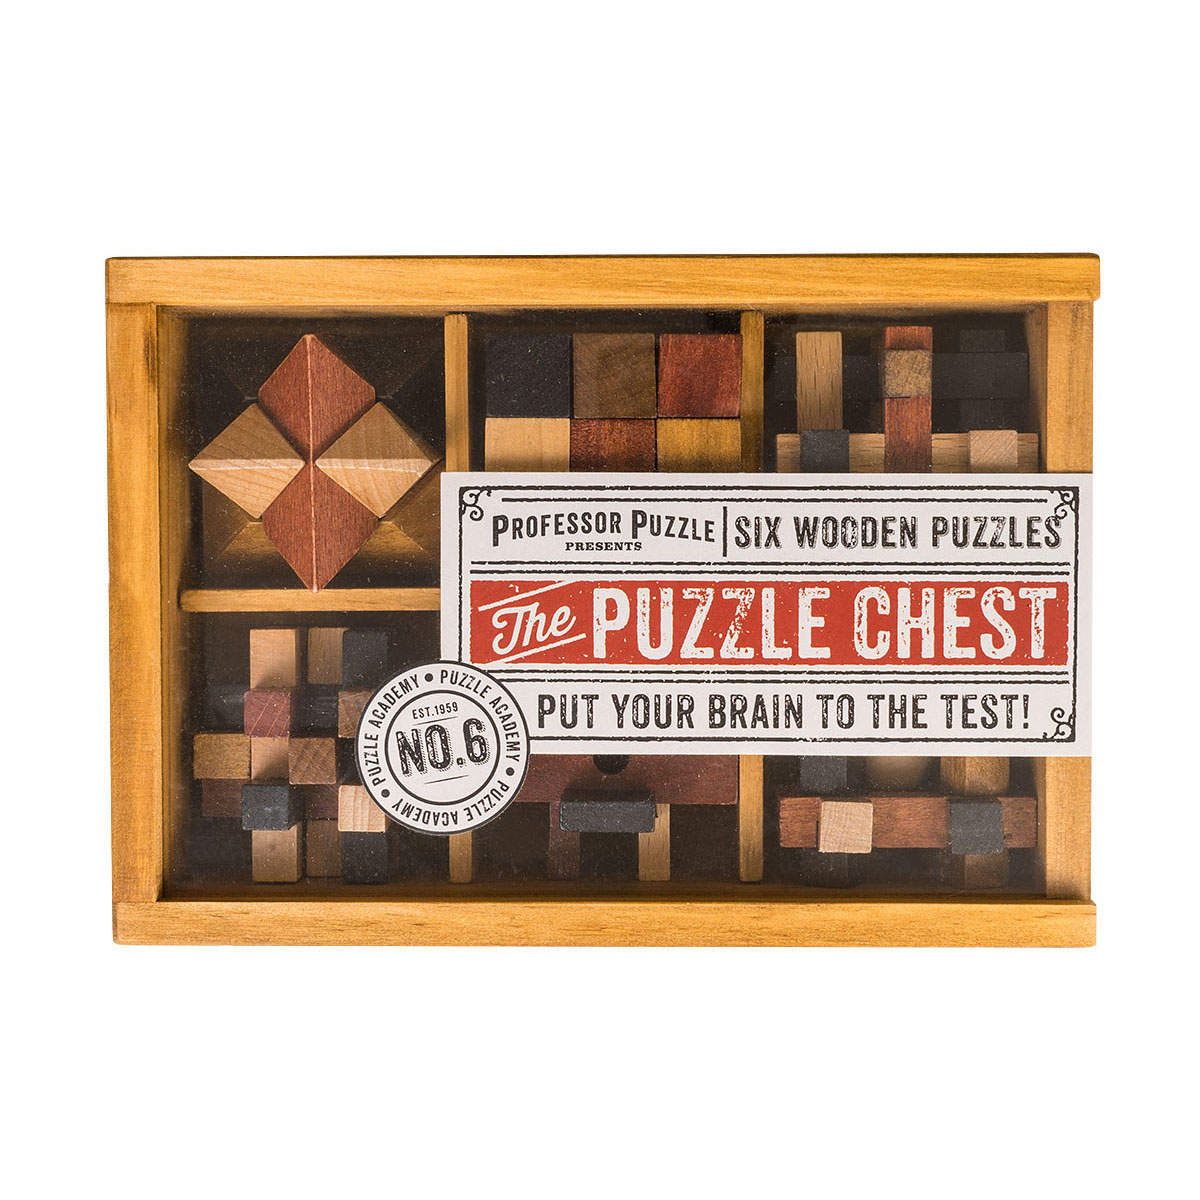 SS_PuzzleAcademy (6 of 6)